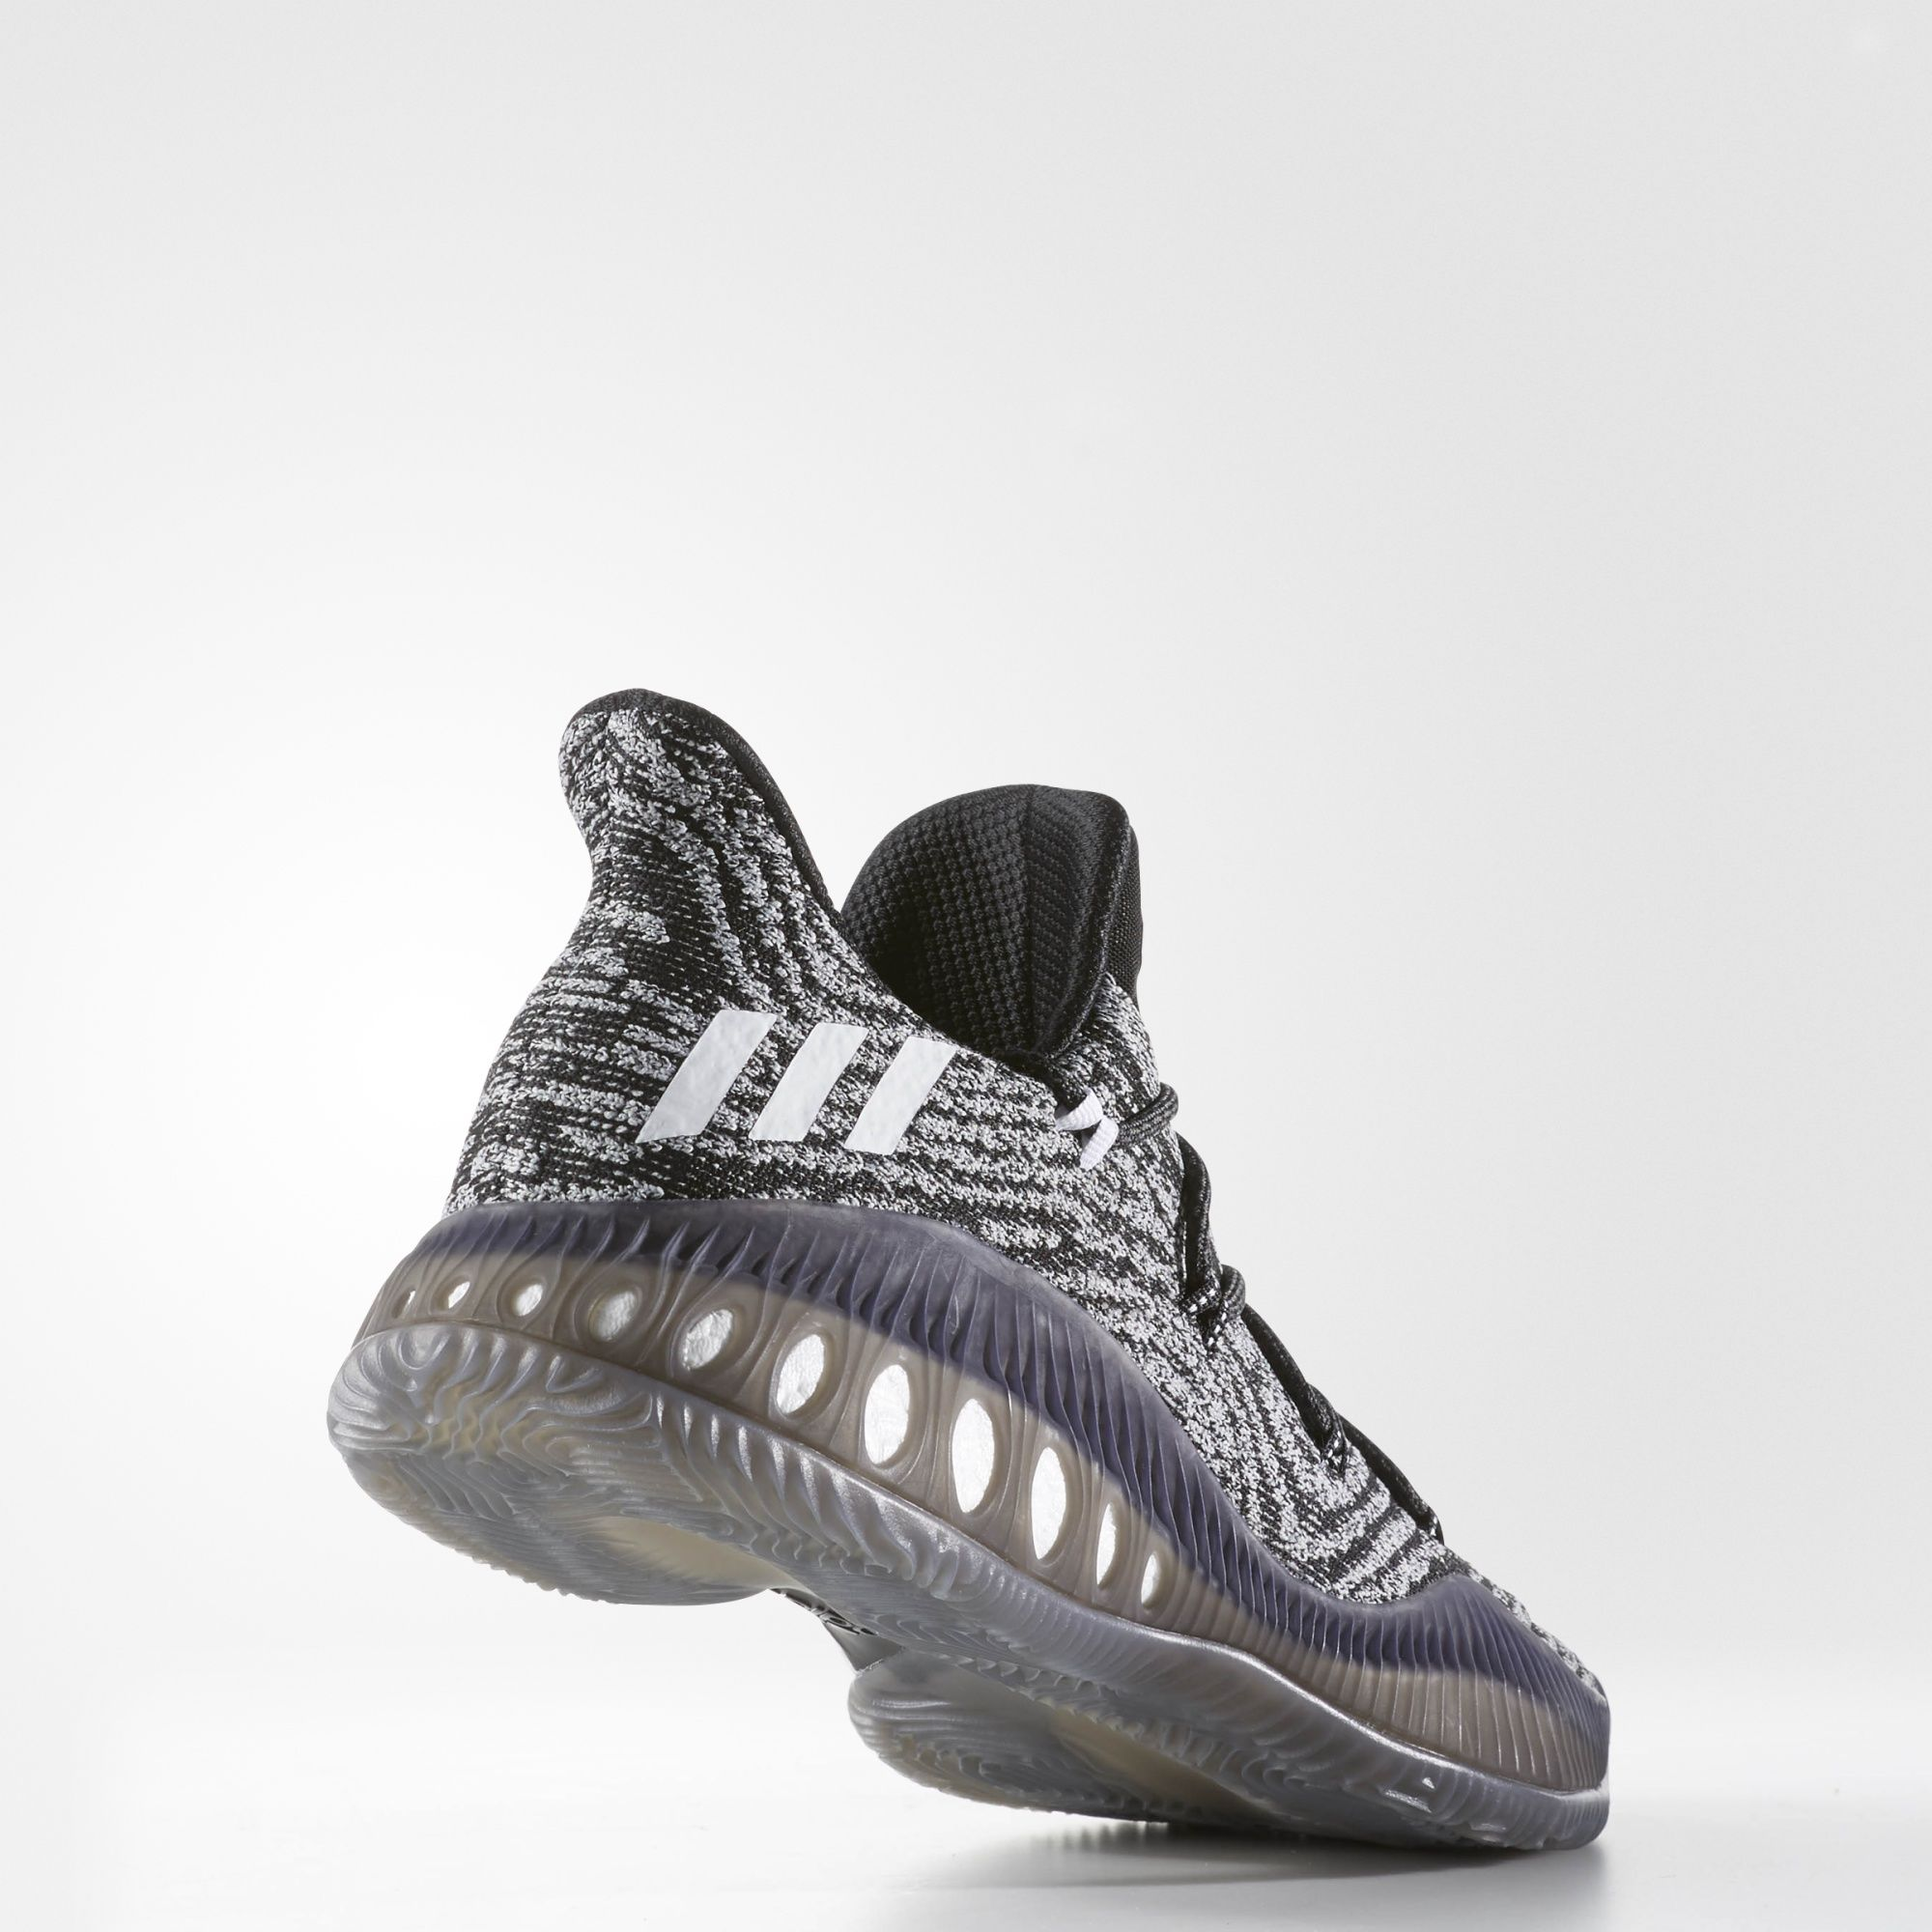 Adidas Crazy Explosive Low – AW – Lateral Angle